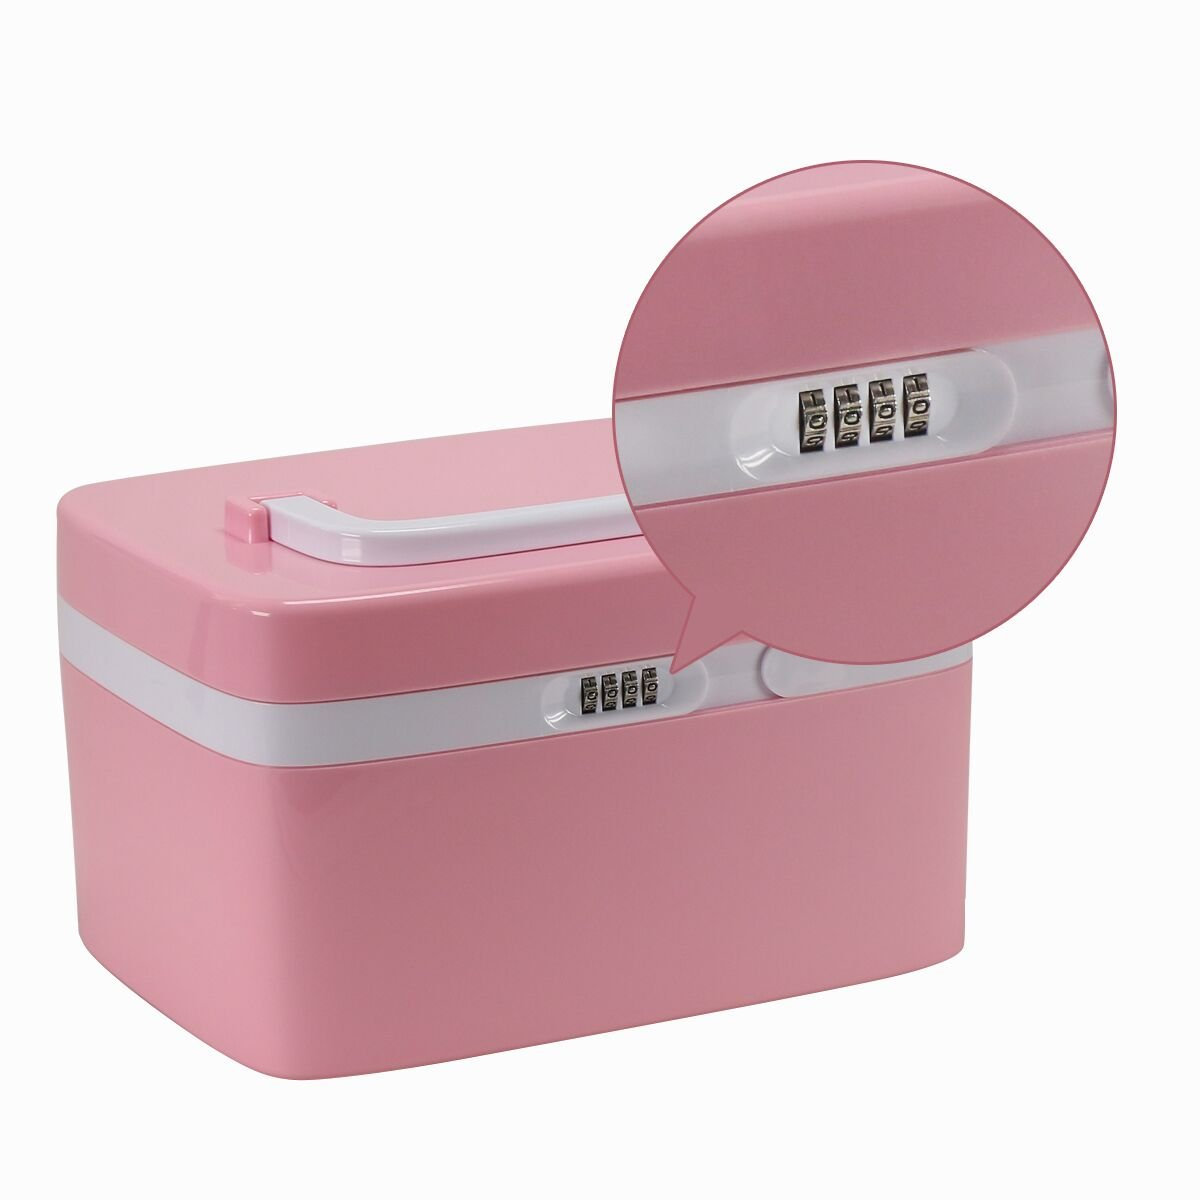 EVERTOP Medicine Cabinet with Coded Lock and Divided Compartments, Pink